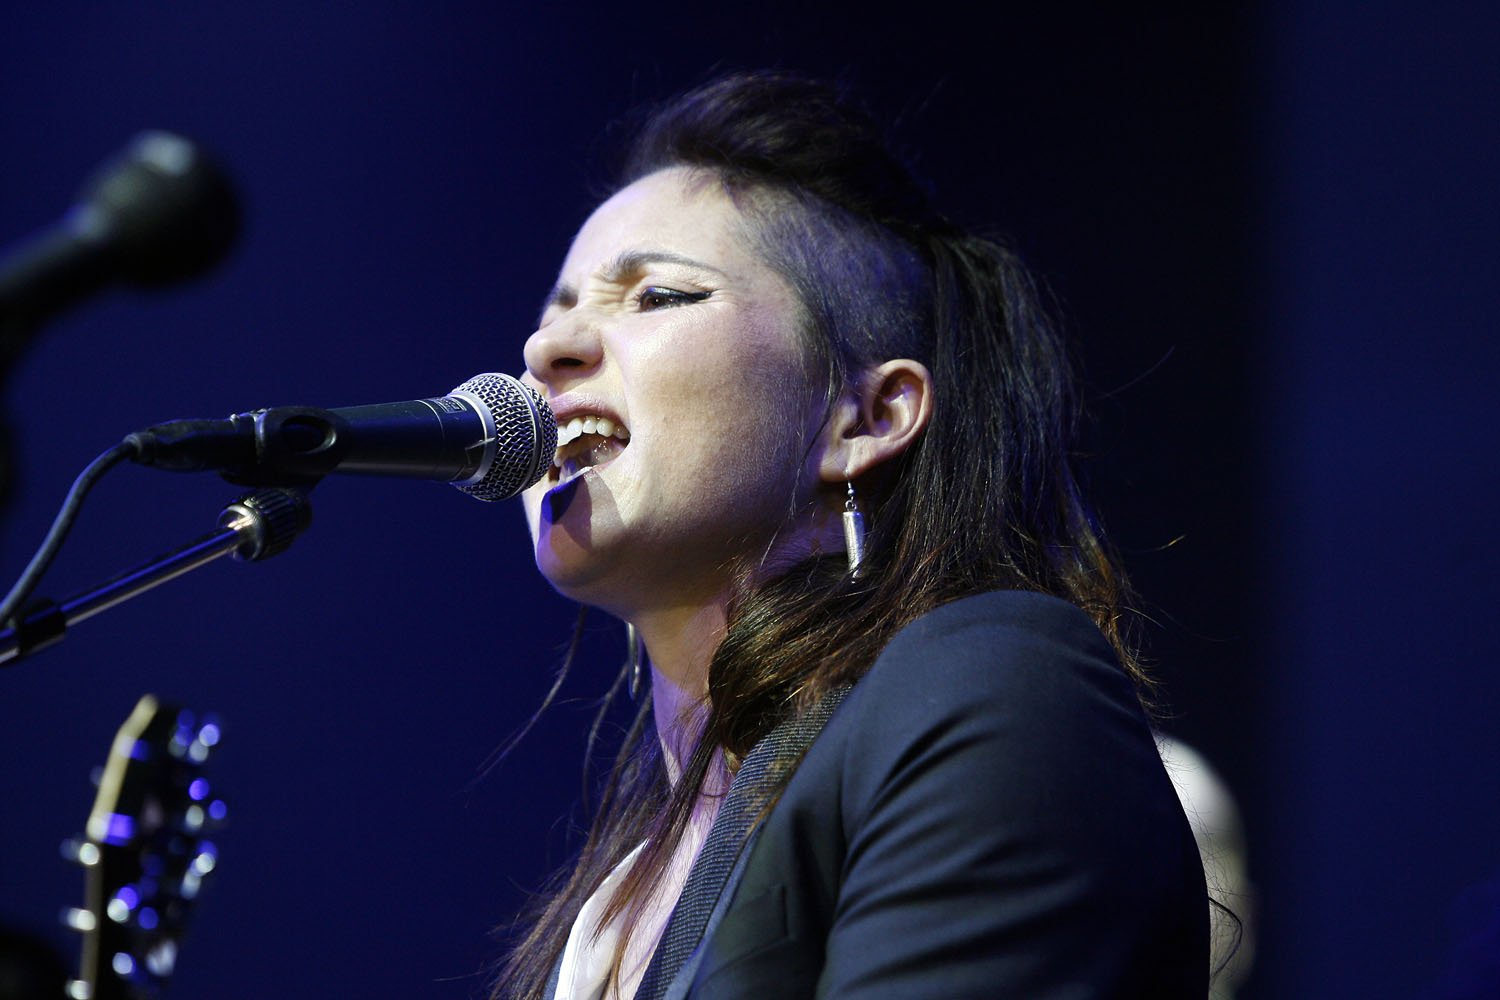 KT Tunstall @ Plymouth Pavilions 14th December 2012 - www.leapimages.co.uk